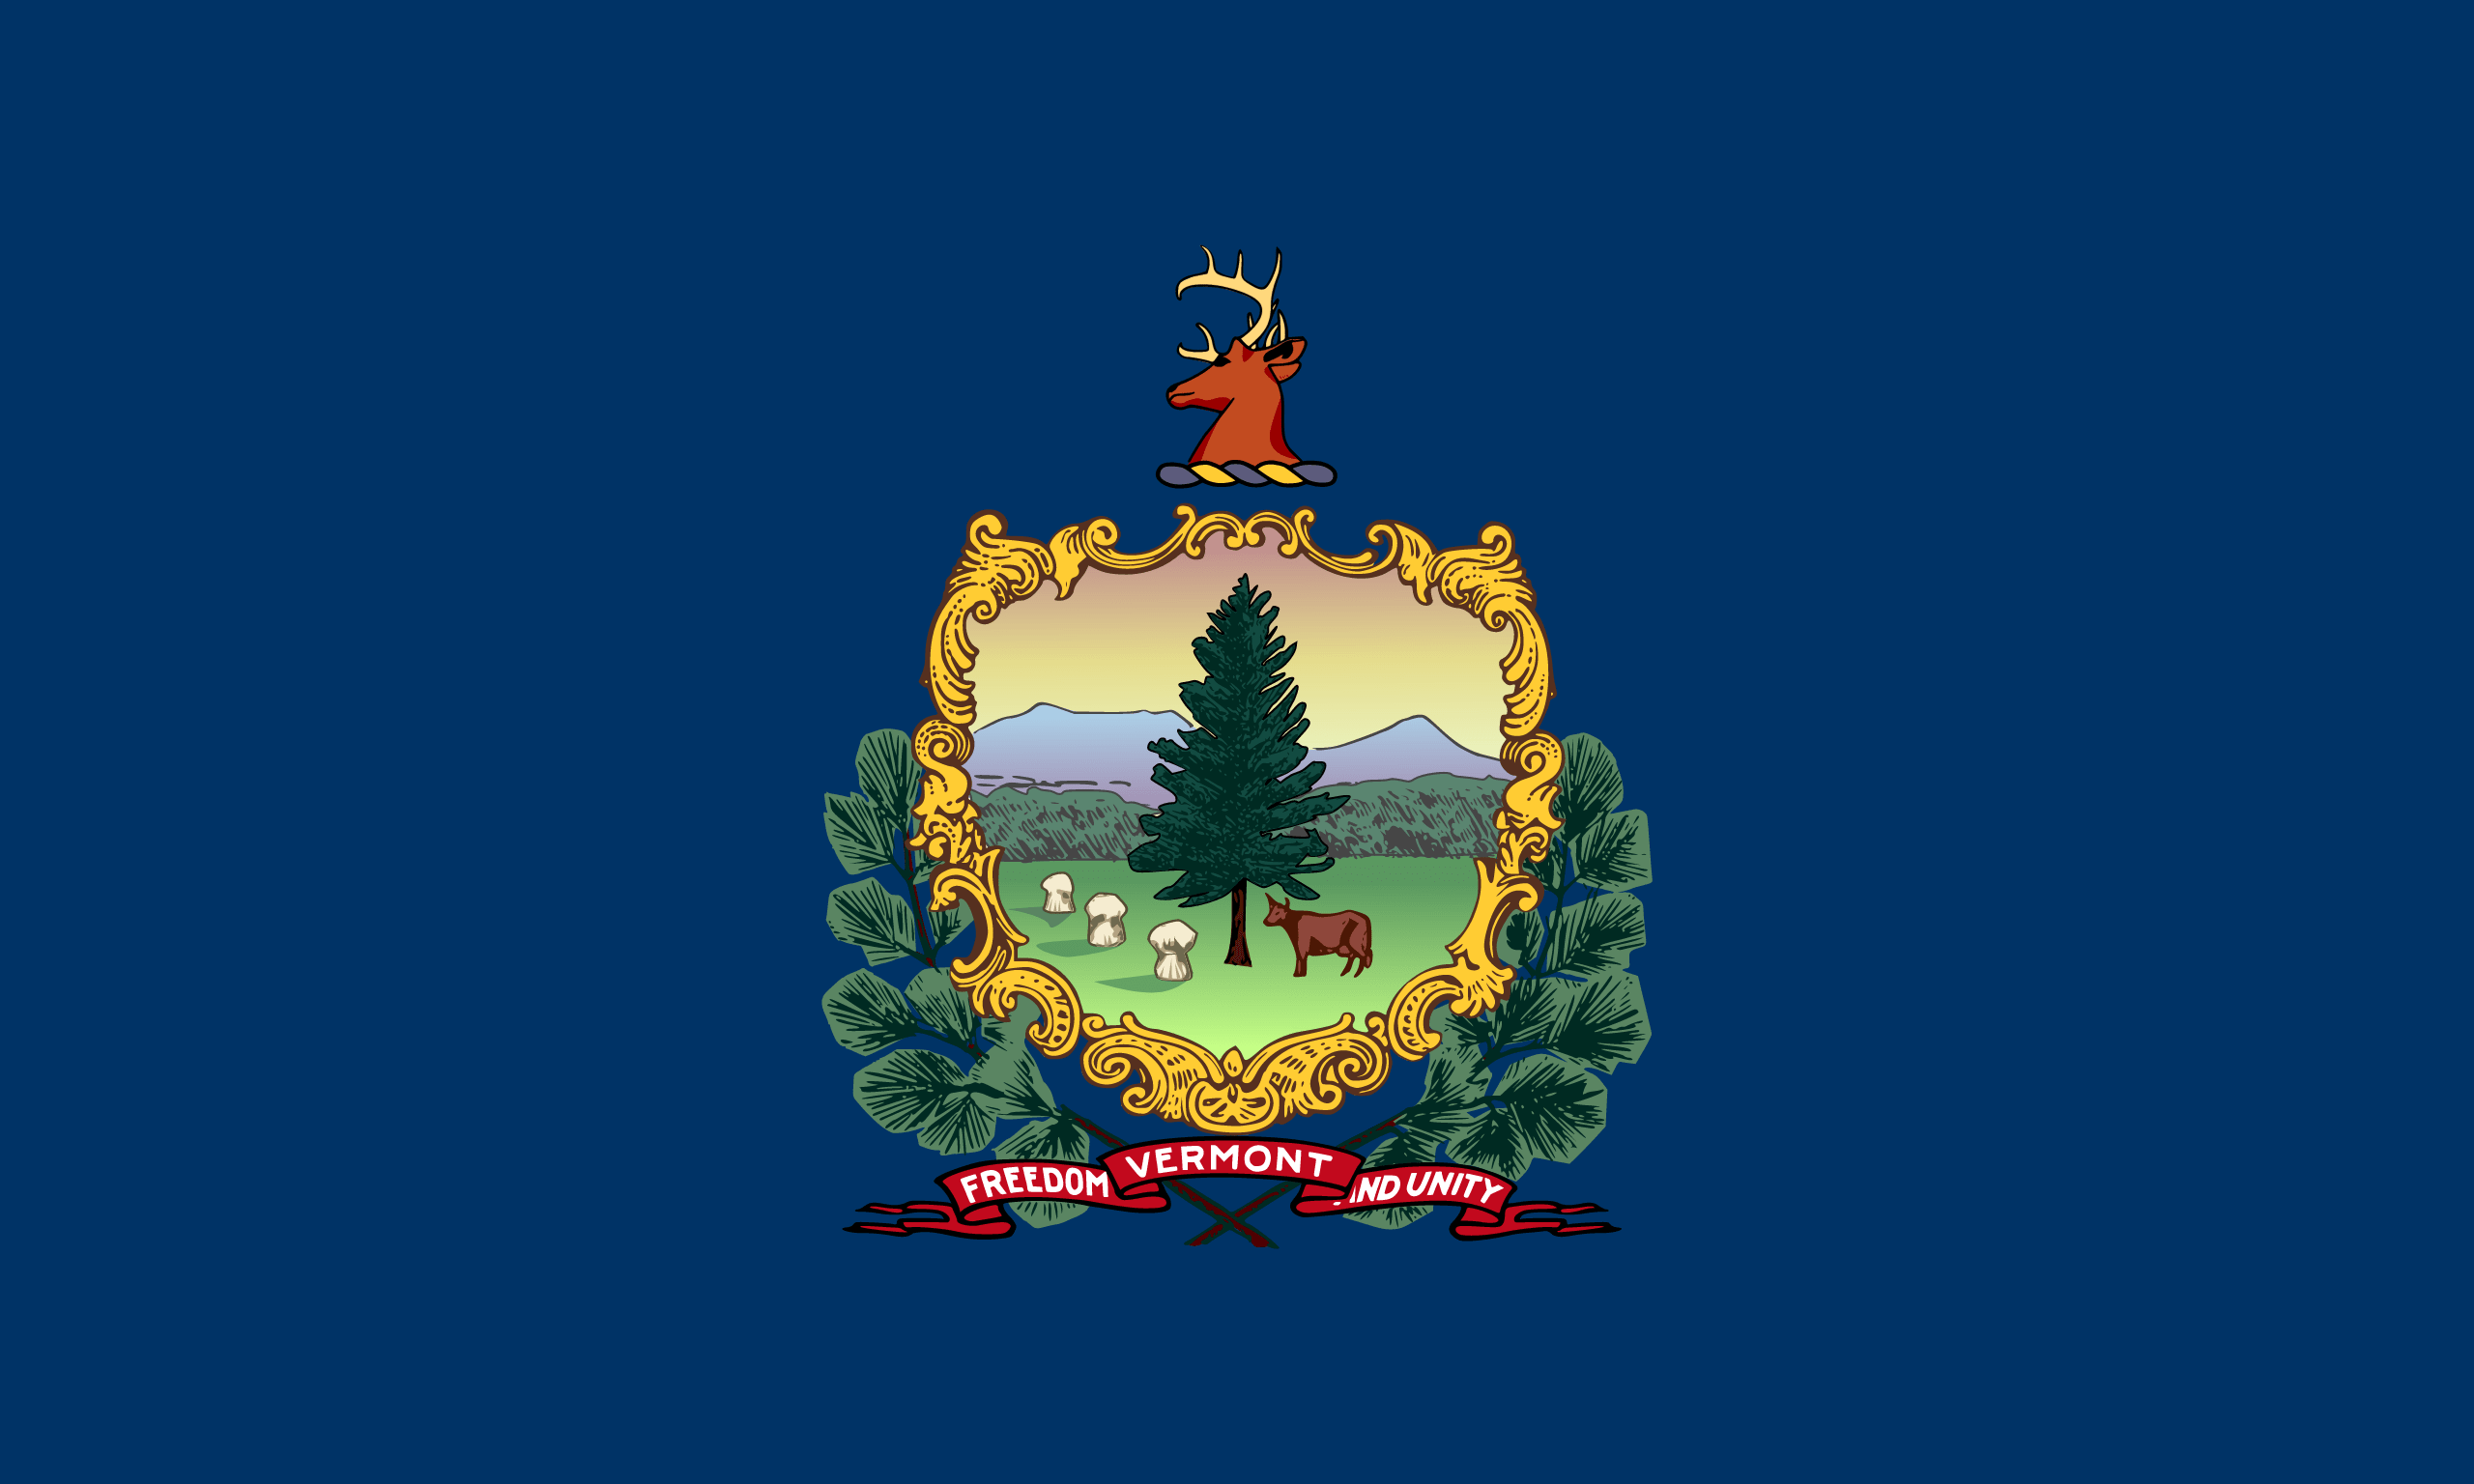 Vermont flags of the us states download a flag or use it on websites buycottarizona